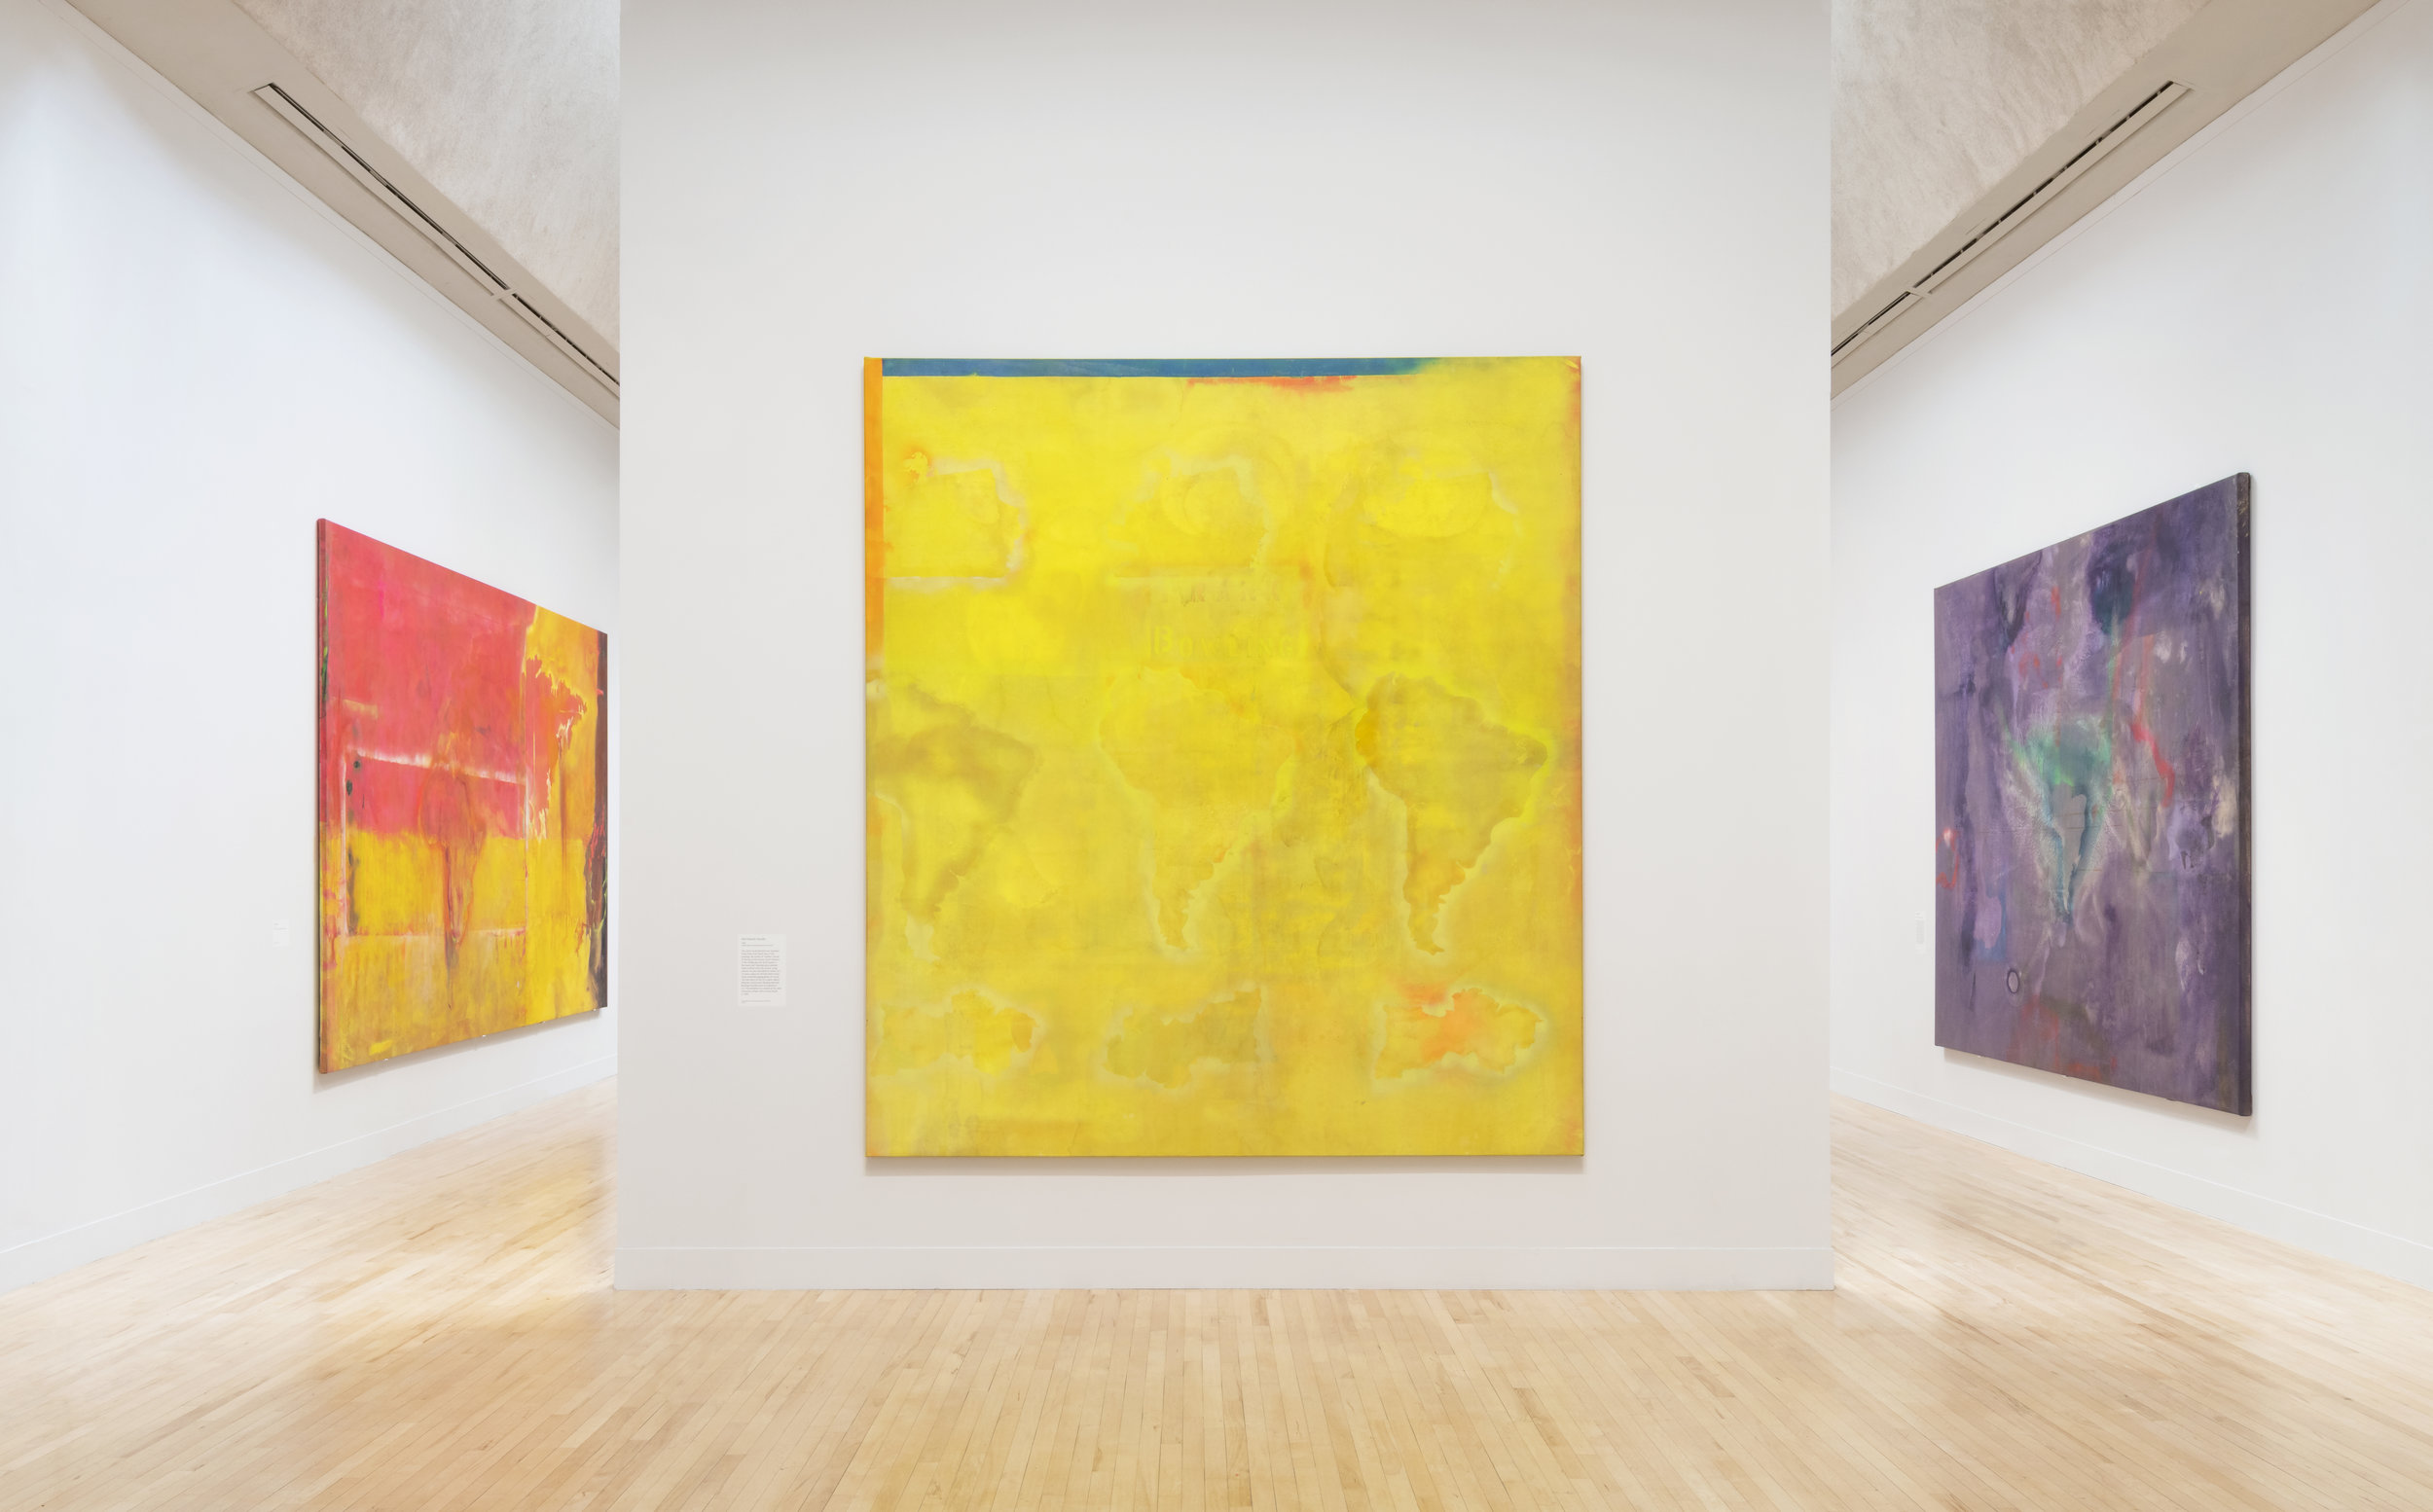 Installation View,  Frank Bowling  at Tate Britain (31 May - 26 August 2019). Tate Photography, Matt Greenwood